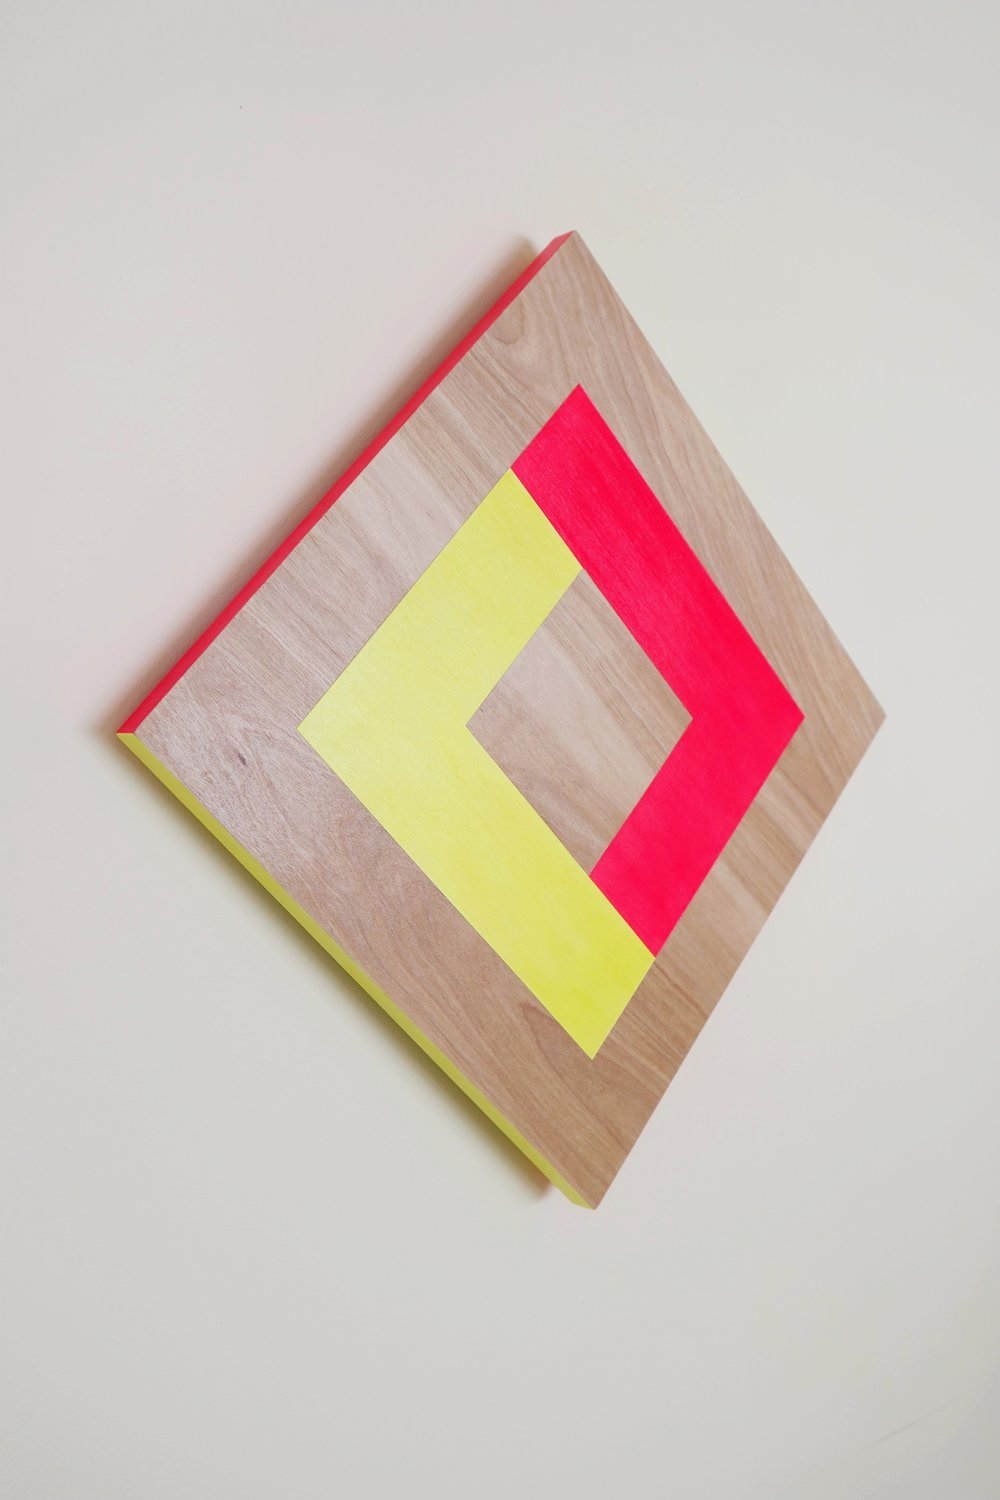 Tilted Square   2018    wood, acrylic paint, urethane    22.5 x 1.25 x 22.5 inches    see store tab for price